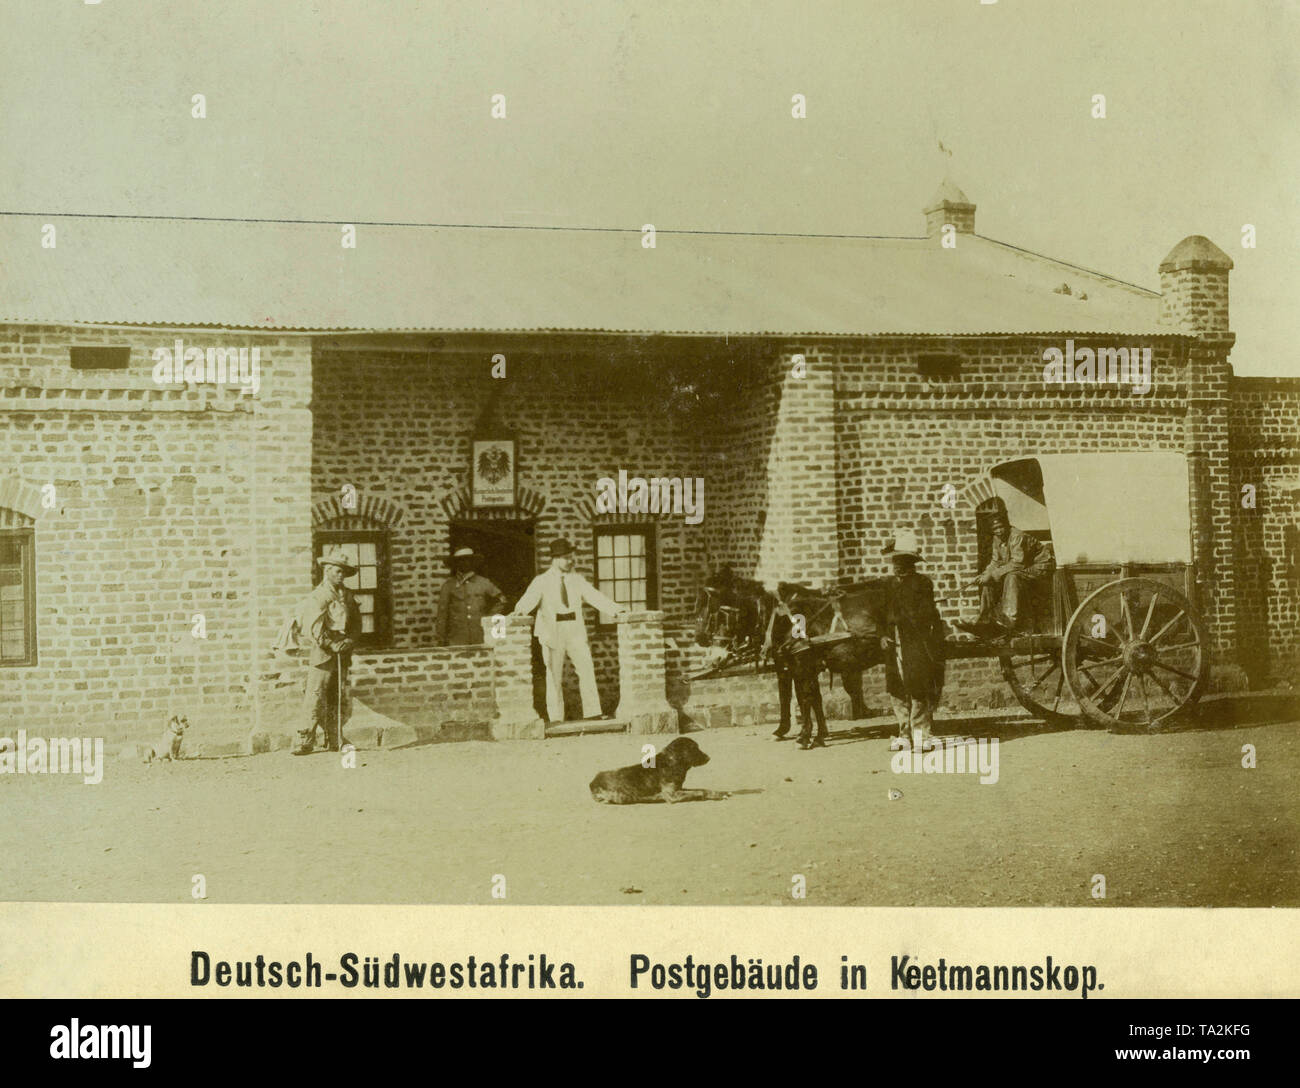 A stagecoach is in front of the Imperial German Postal Agency in Keetmanskoop in German South West Africa (undated photo). - Stock Image